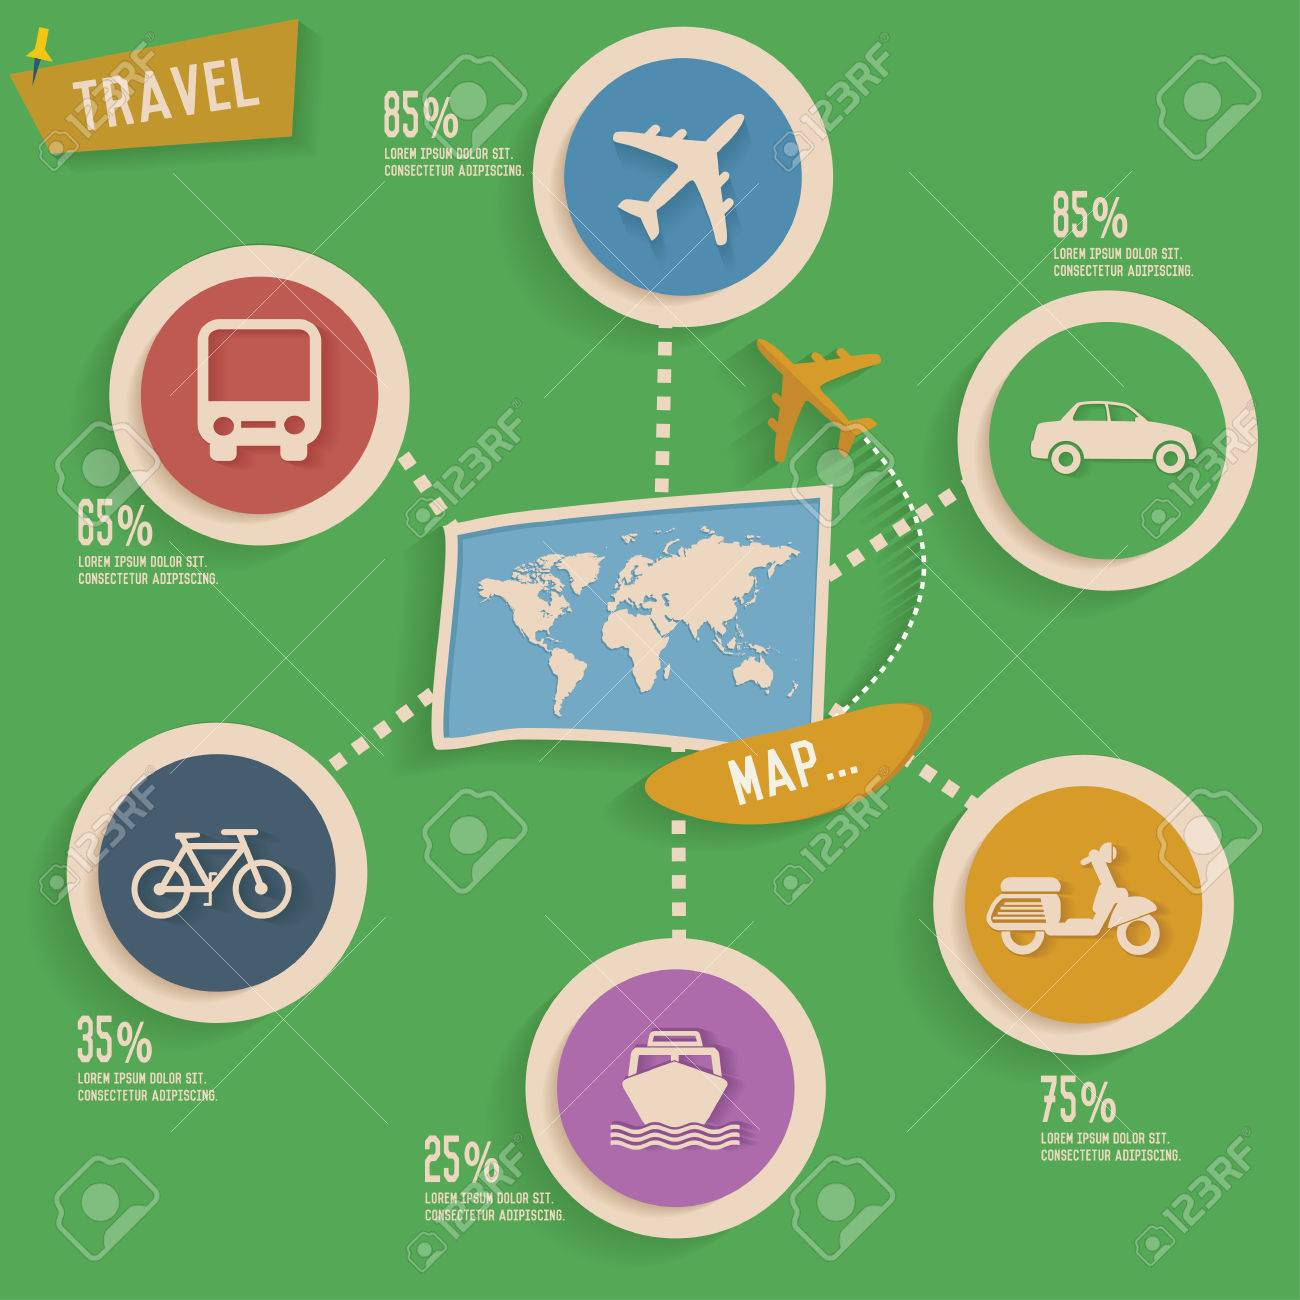 Travel and map info graphic designclean vector royalty free travel and map info graphic designclean vector stock vector 30829930 biocorpaavc Images